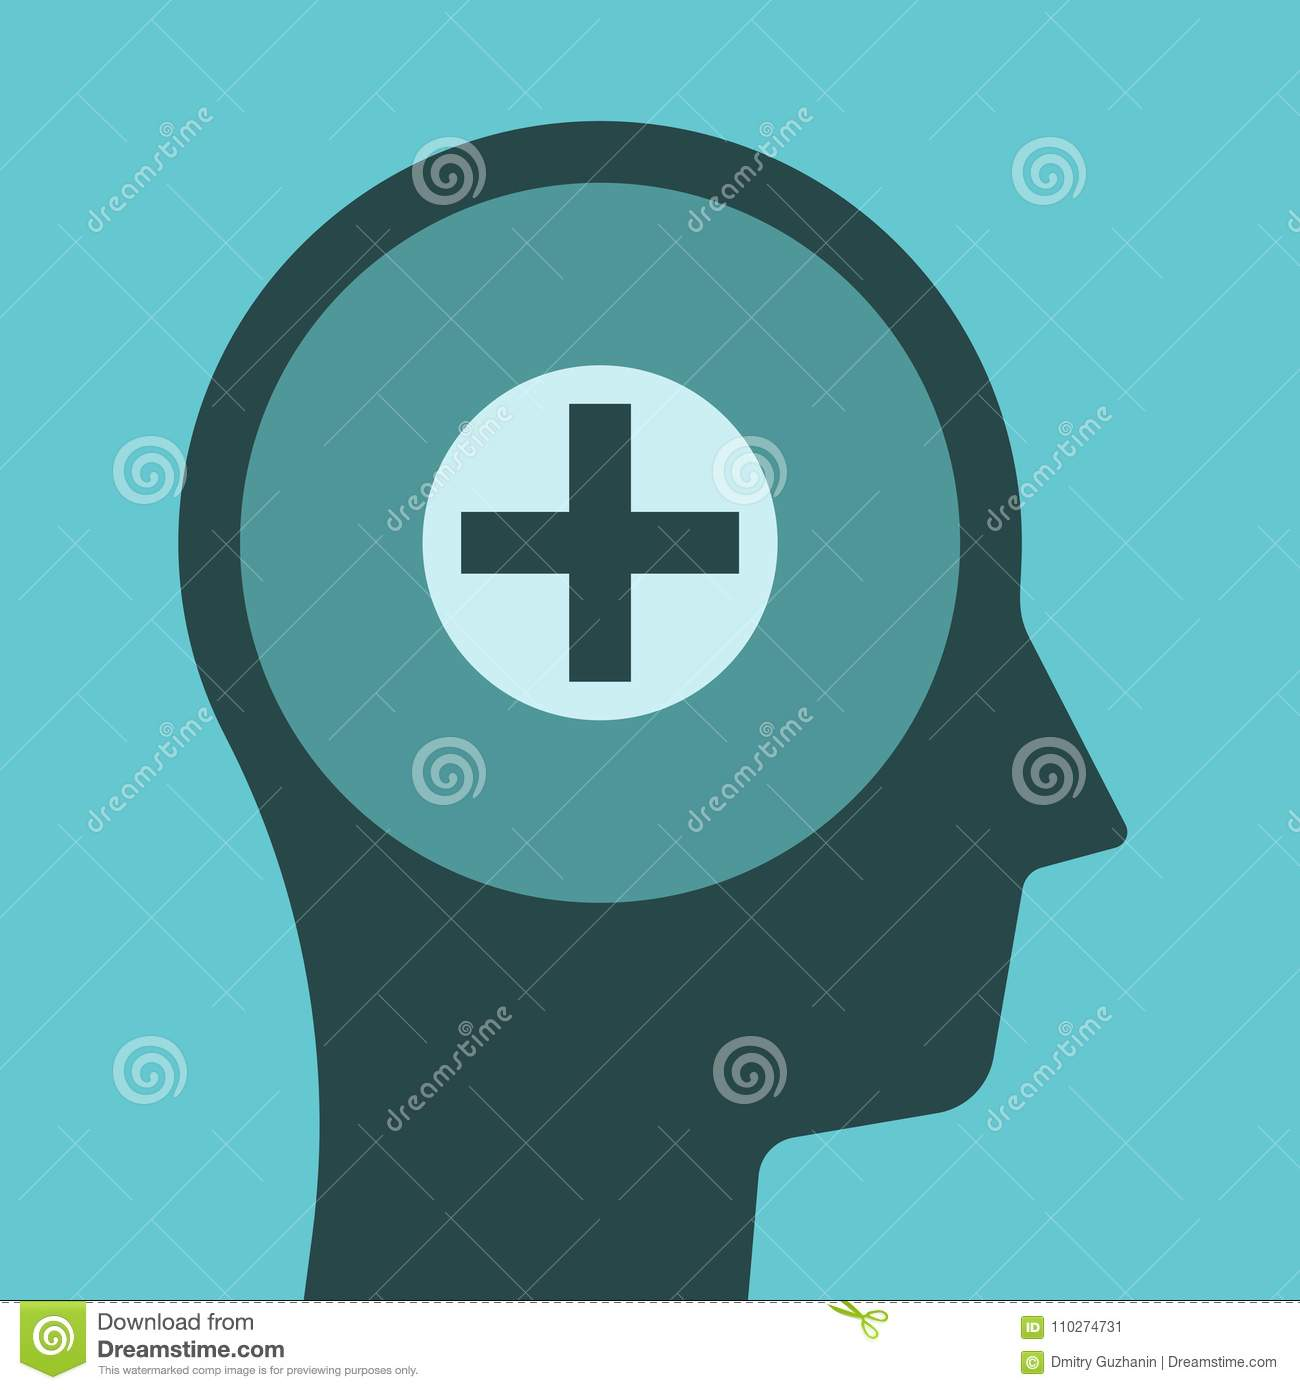 Head silhouette, positive thinking